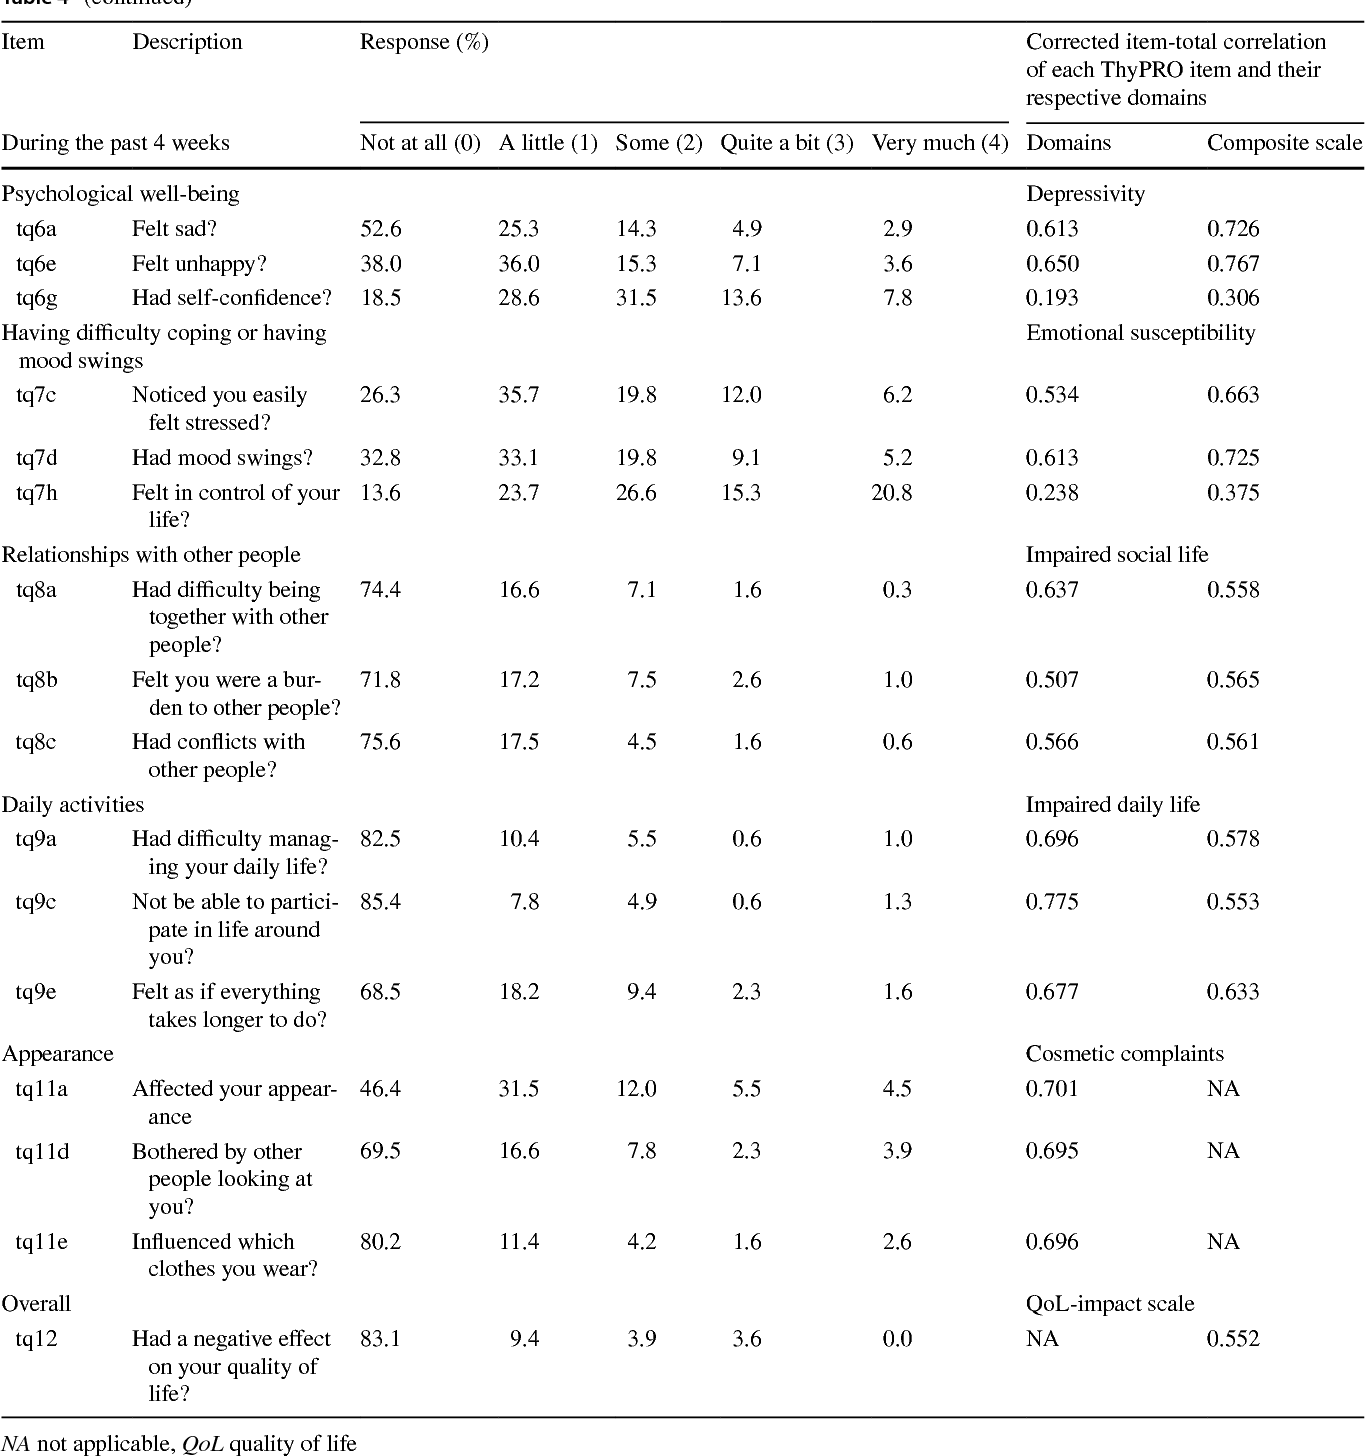 Measurement Properties Of Thypro Short Form Thypro 39 For Use In Chinese Patients With Benign Thyroid Diseases Semantic Scholar